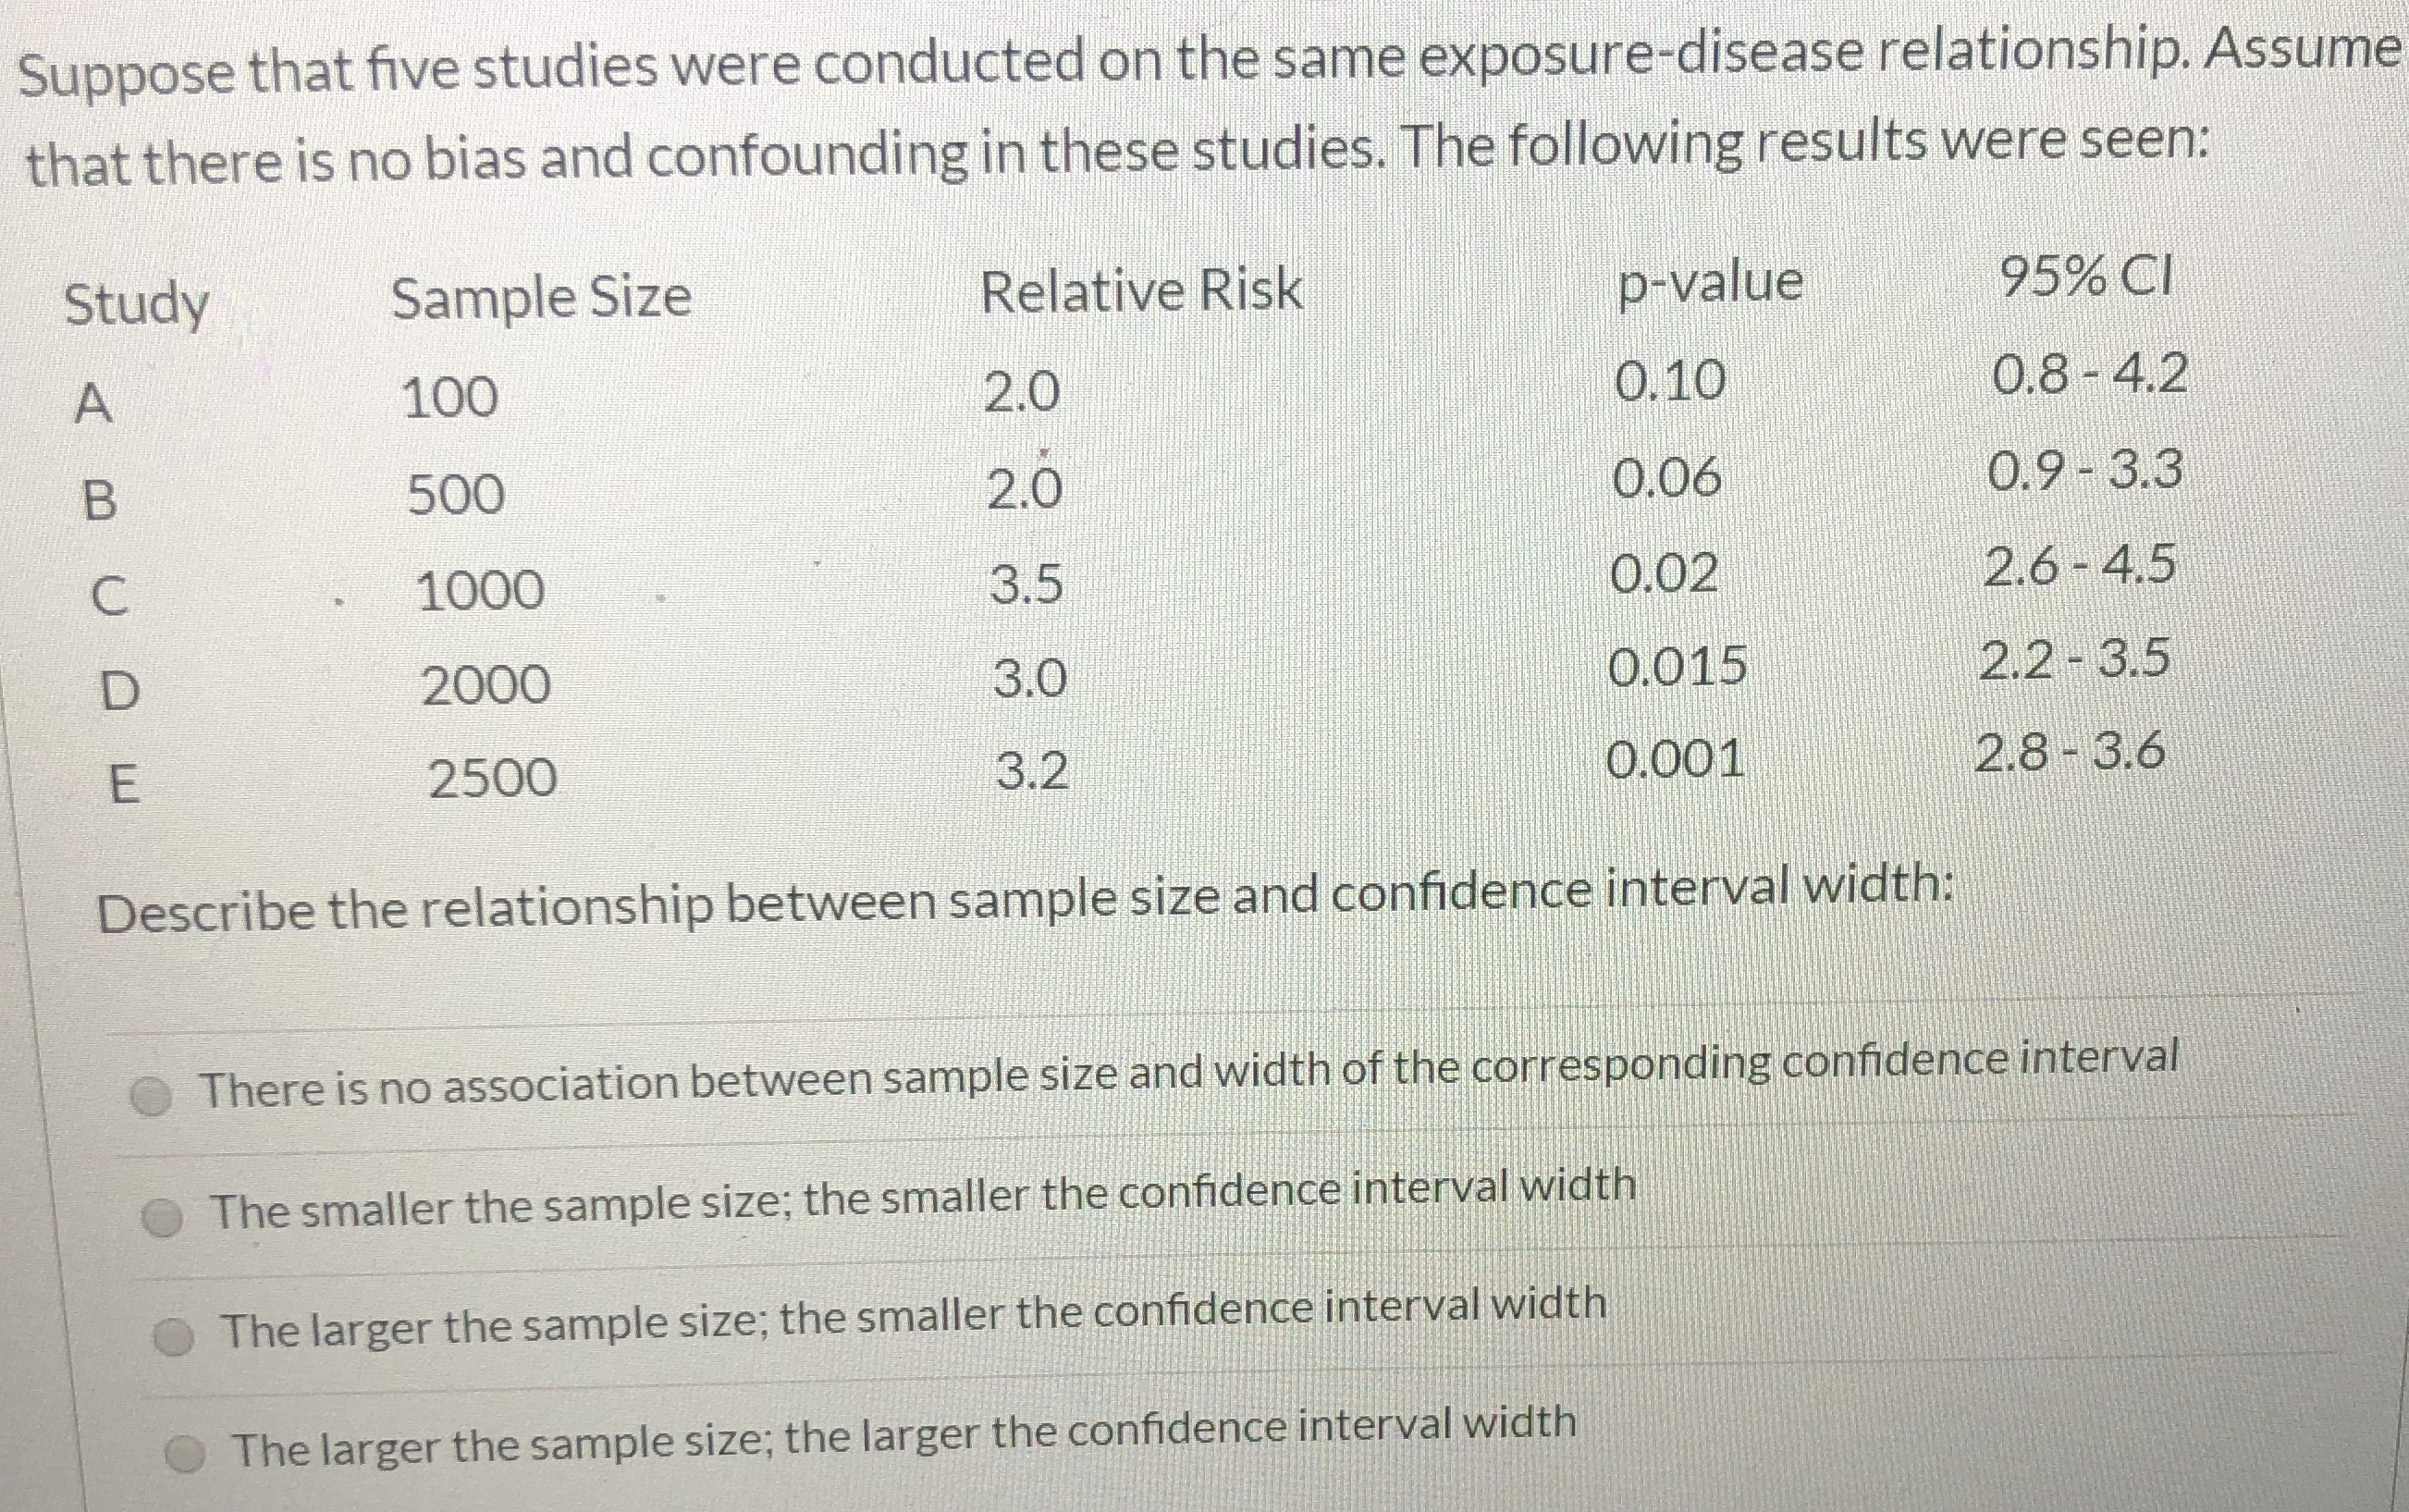 Suppose that five studies were conducted on the same exposure-disease relationship. Assume that there is no bias and confounding in these studies. The following results were seen: 95% CI p-value Relative Risk Sample Size Study 0.8-4.2 O.10 2.0 100 A 0.9-3.3 O.06 2.0 500 B 2.6-4.5 O.02 3.5 1000 2.2-3.5 O.015 3.0 2000 2.8-3.6 O.001 3.2 2500 E Describe the relationship between sample size and confidence interval width: There is no association between sample size and width of the corresponding confidence interval The smaller the sample size; the smaller the confidence interval width The larger the sample size; the smaller the confidence interval width The larger the sample size; the larger the confidence interval width